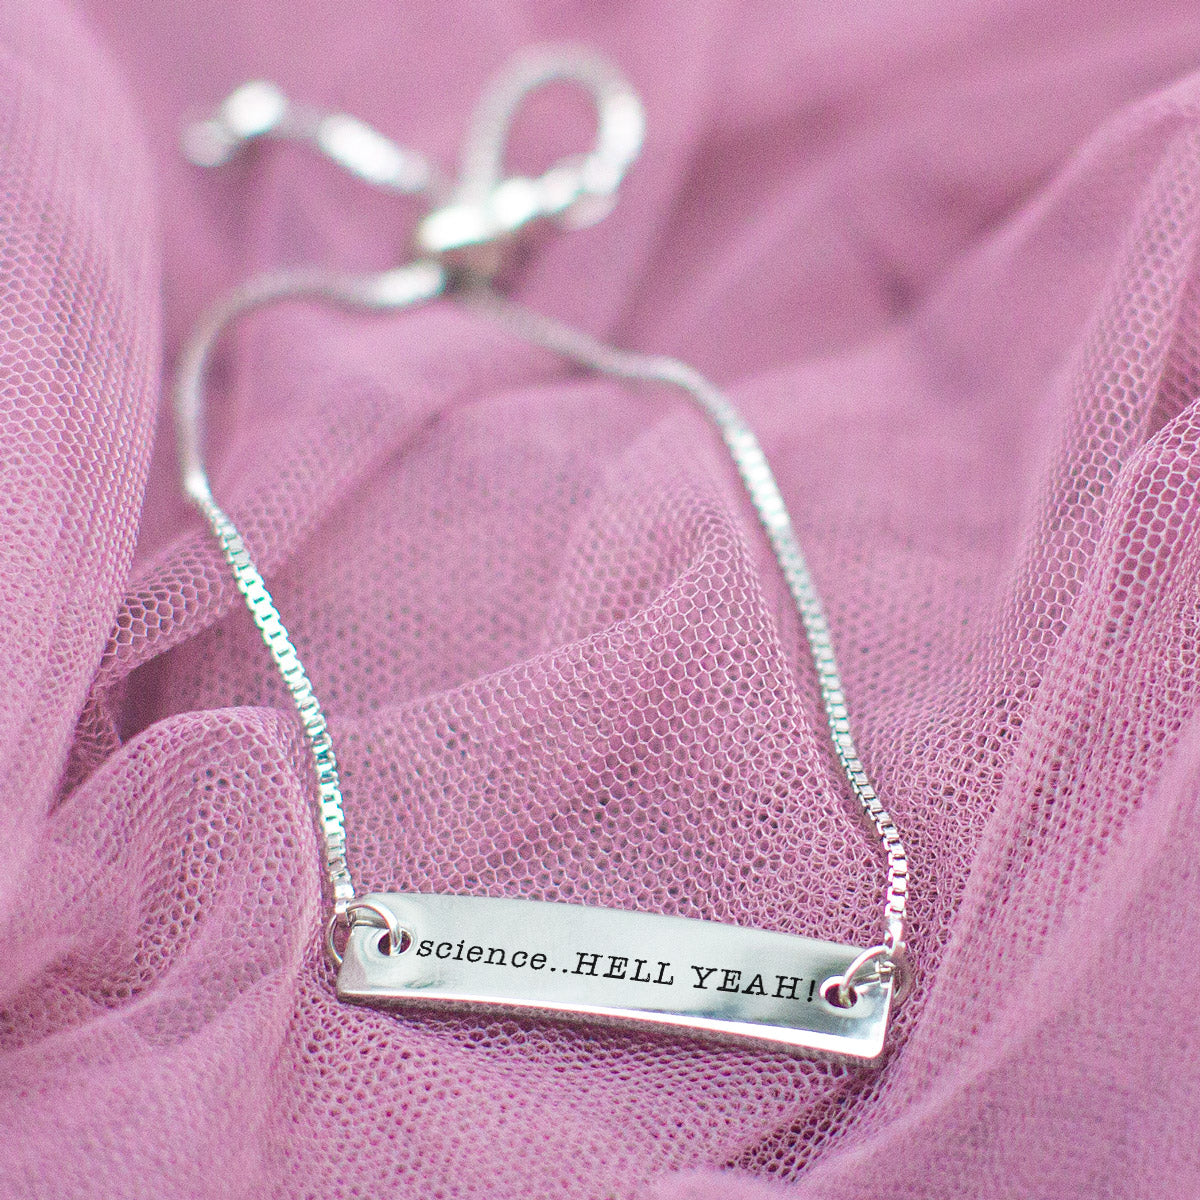 Science. Hell Yeah! Silver Bar Adjustable Bracelet